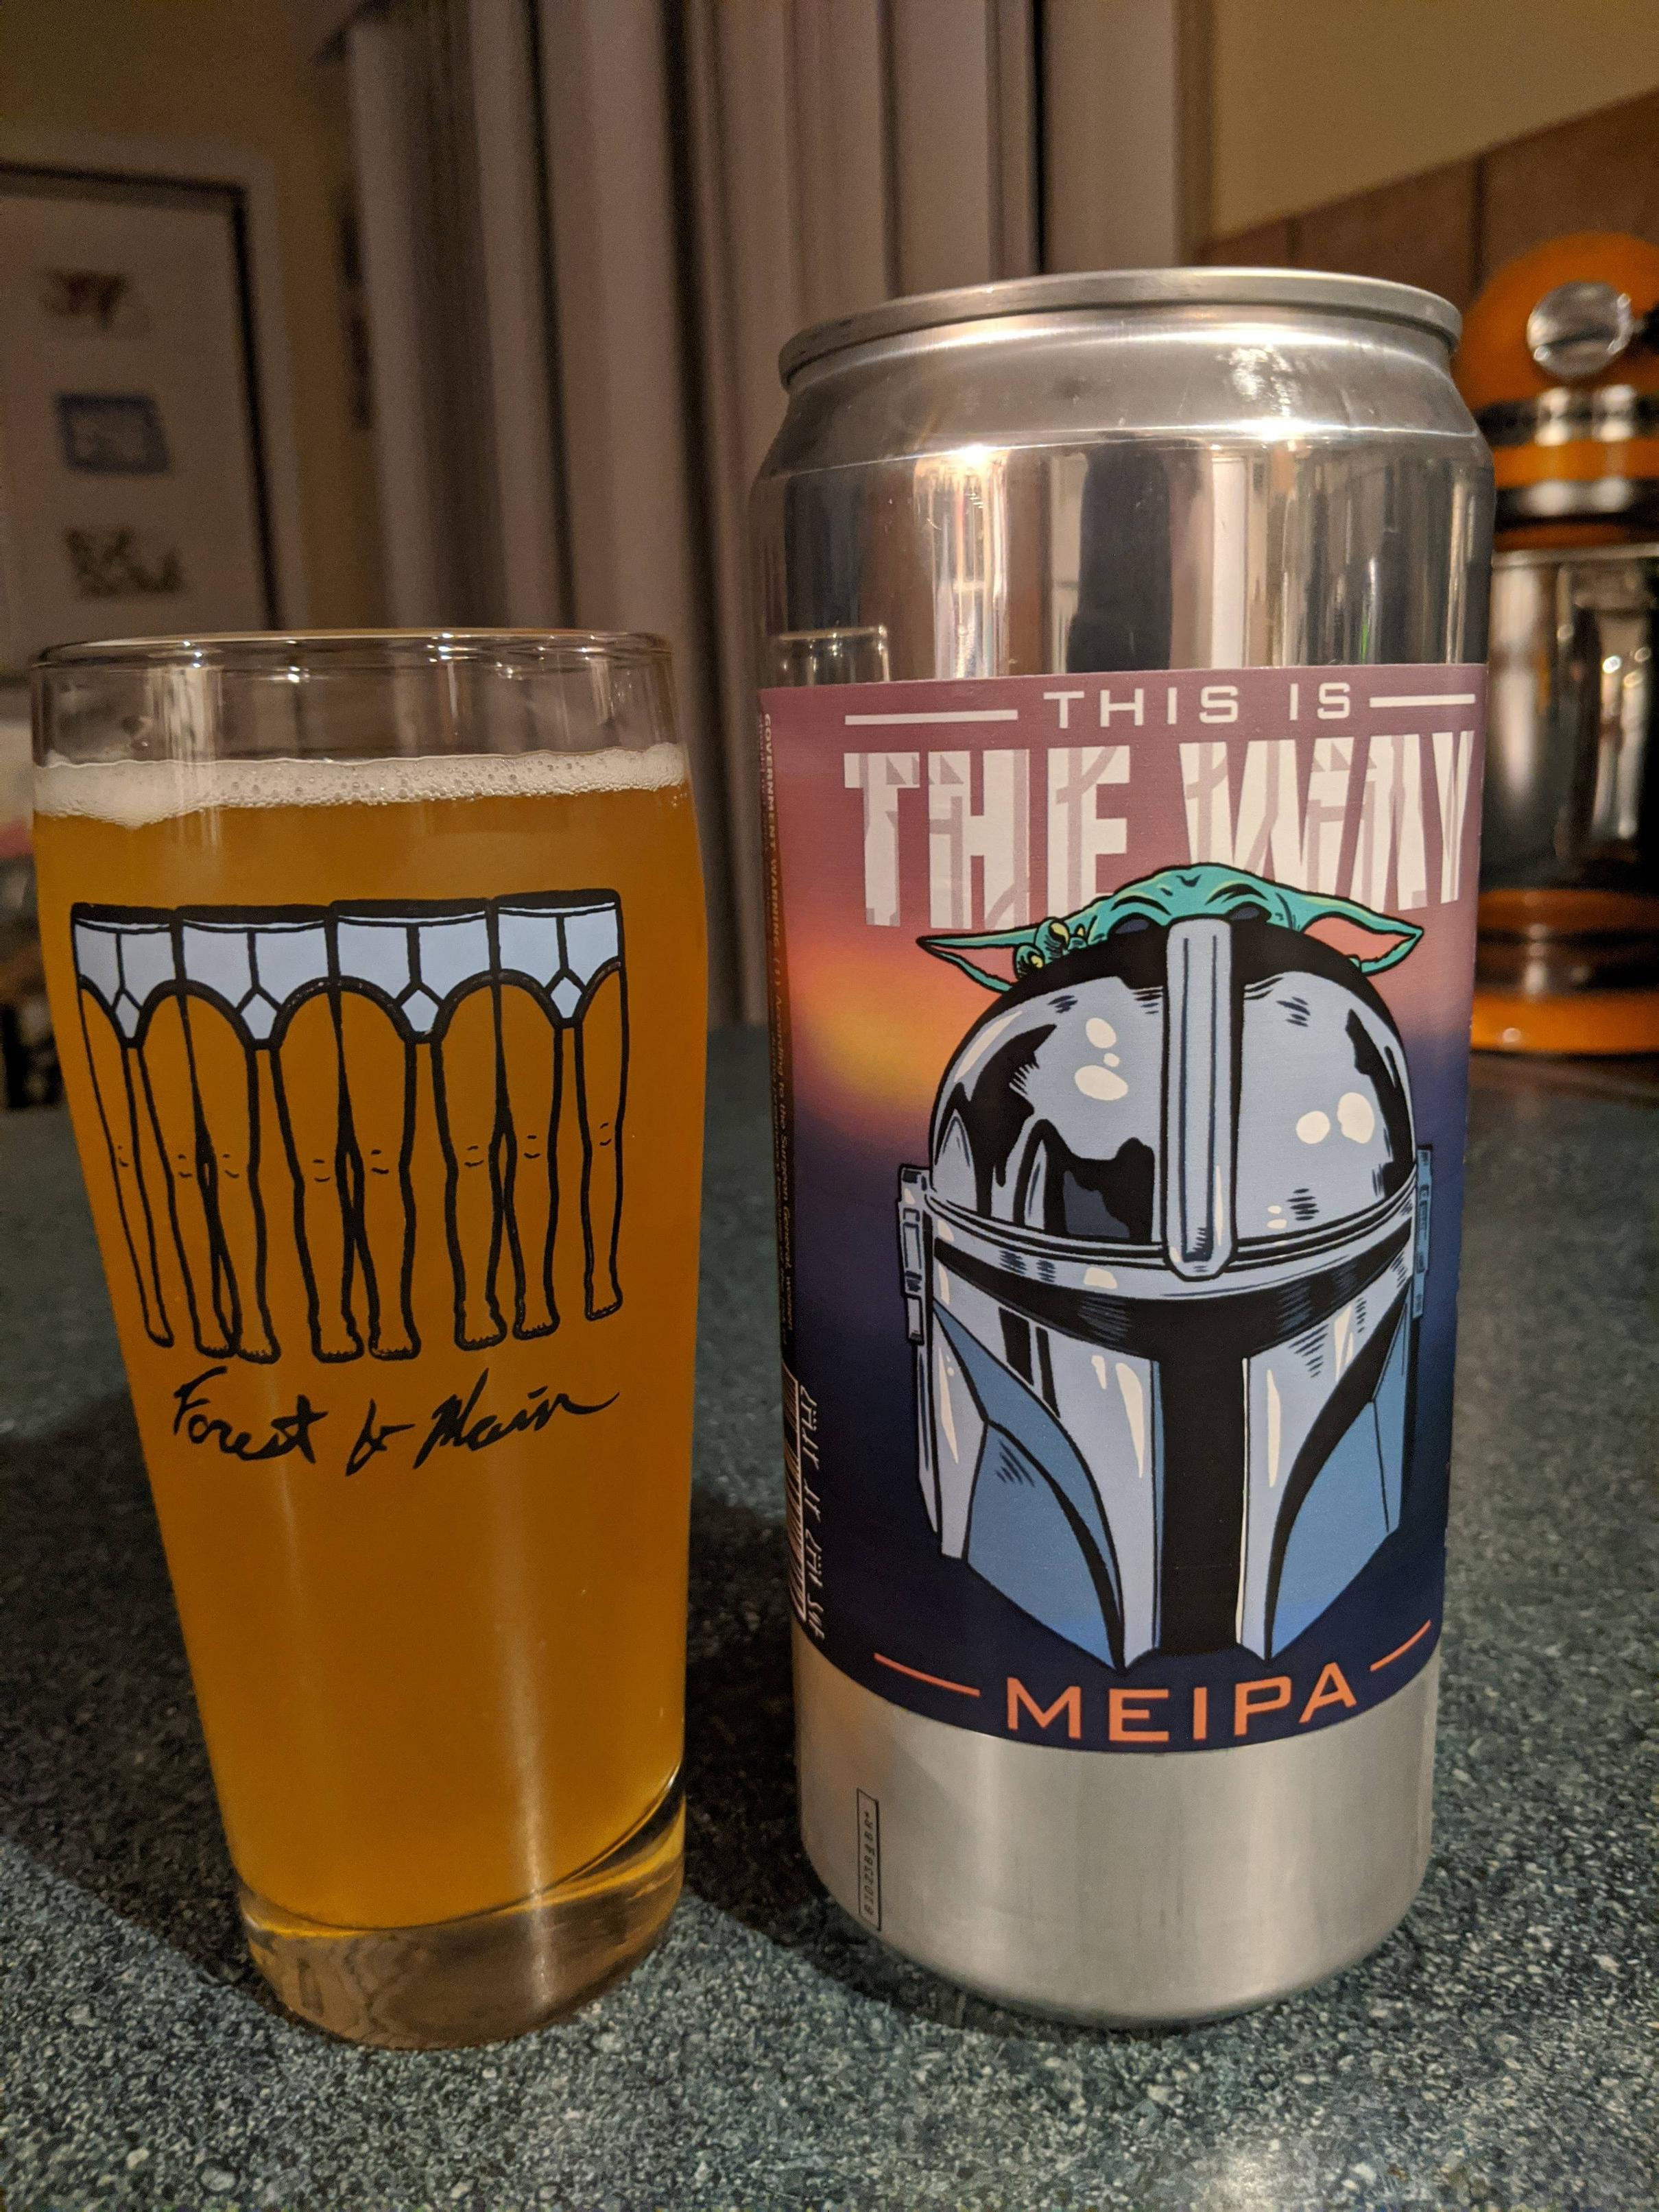 Local brewery made a Mandalorian Beer. A Mos Eisley IPA